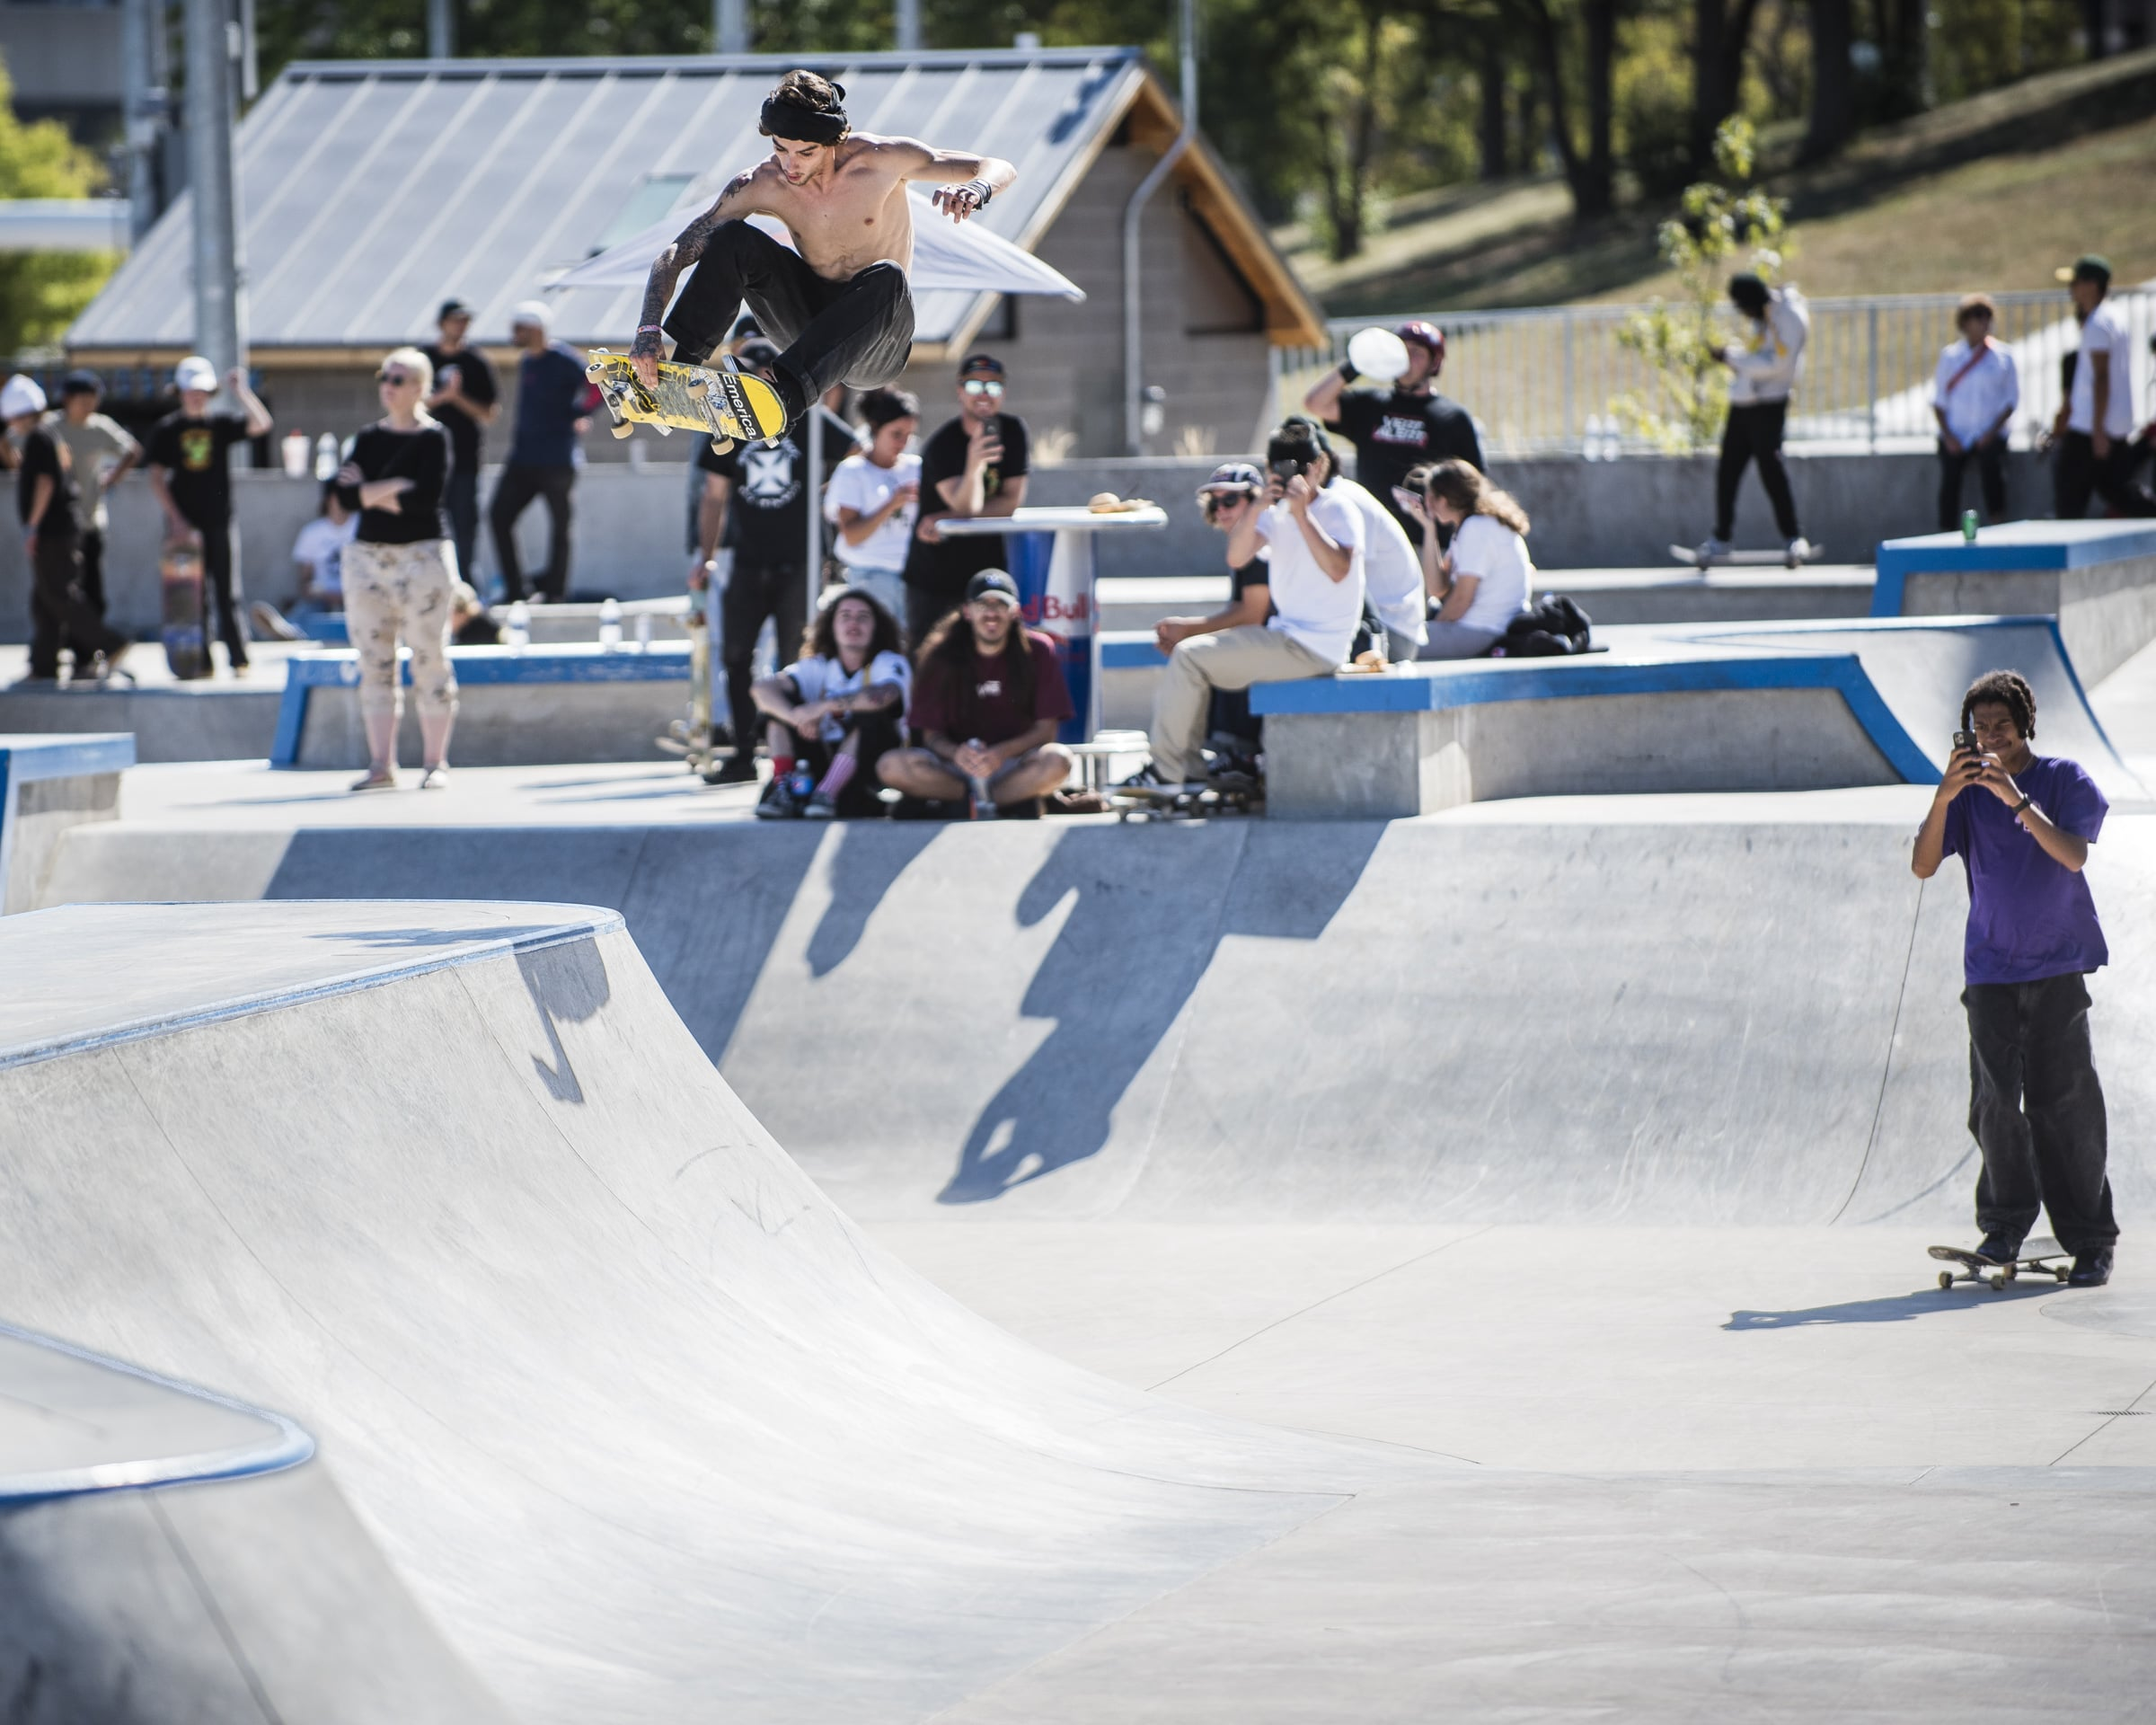 Des Moines Streetstyle Open 2021 - Hucking One